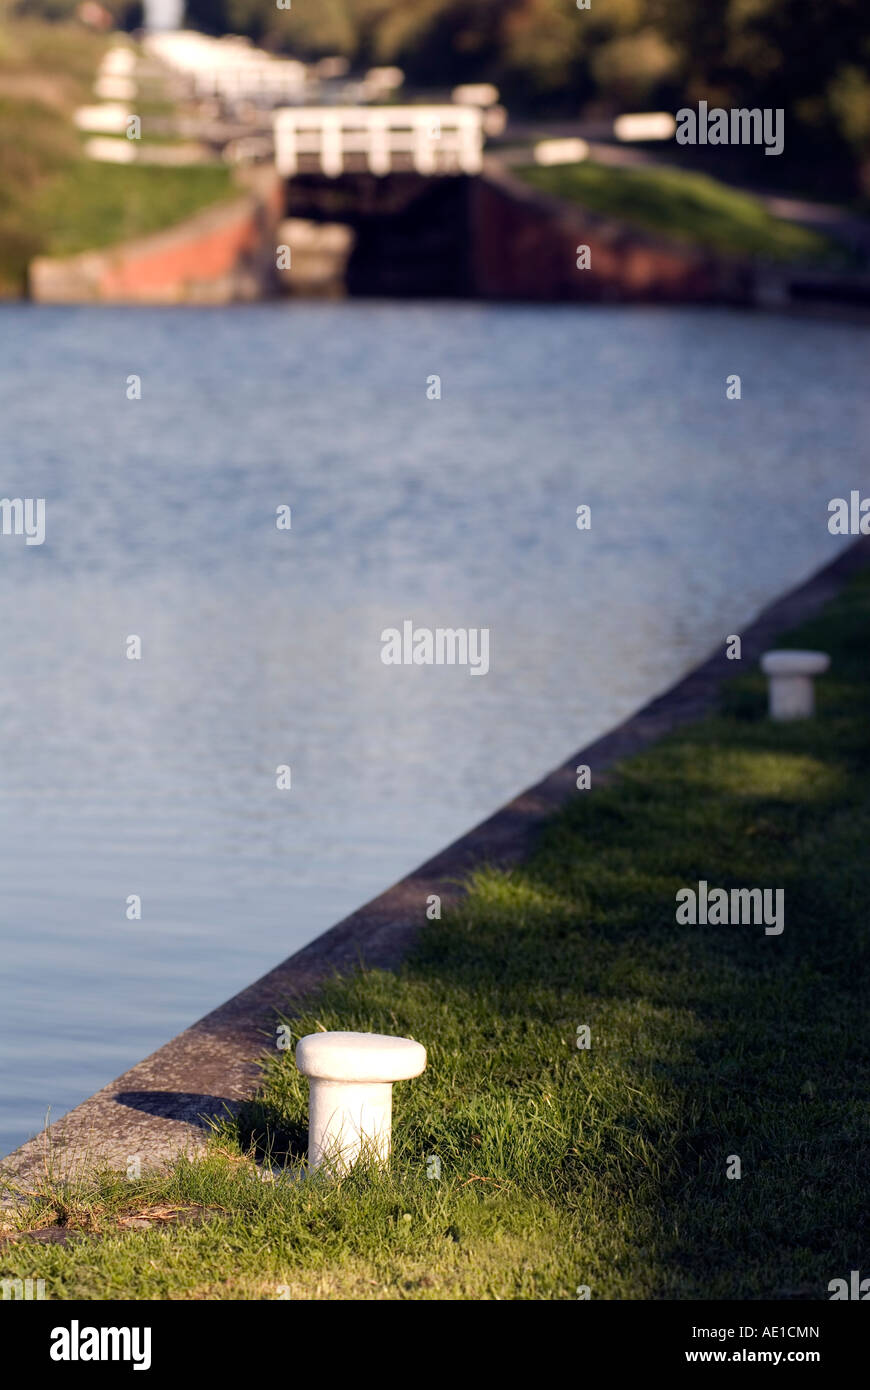 arrowboat navigating along the English canal system - Stock Image